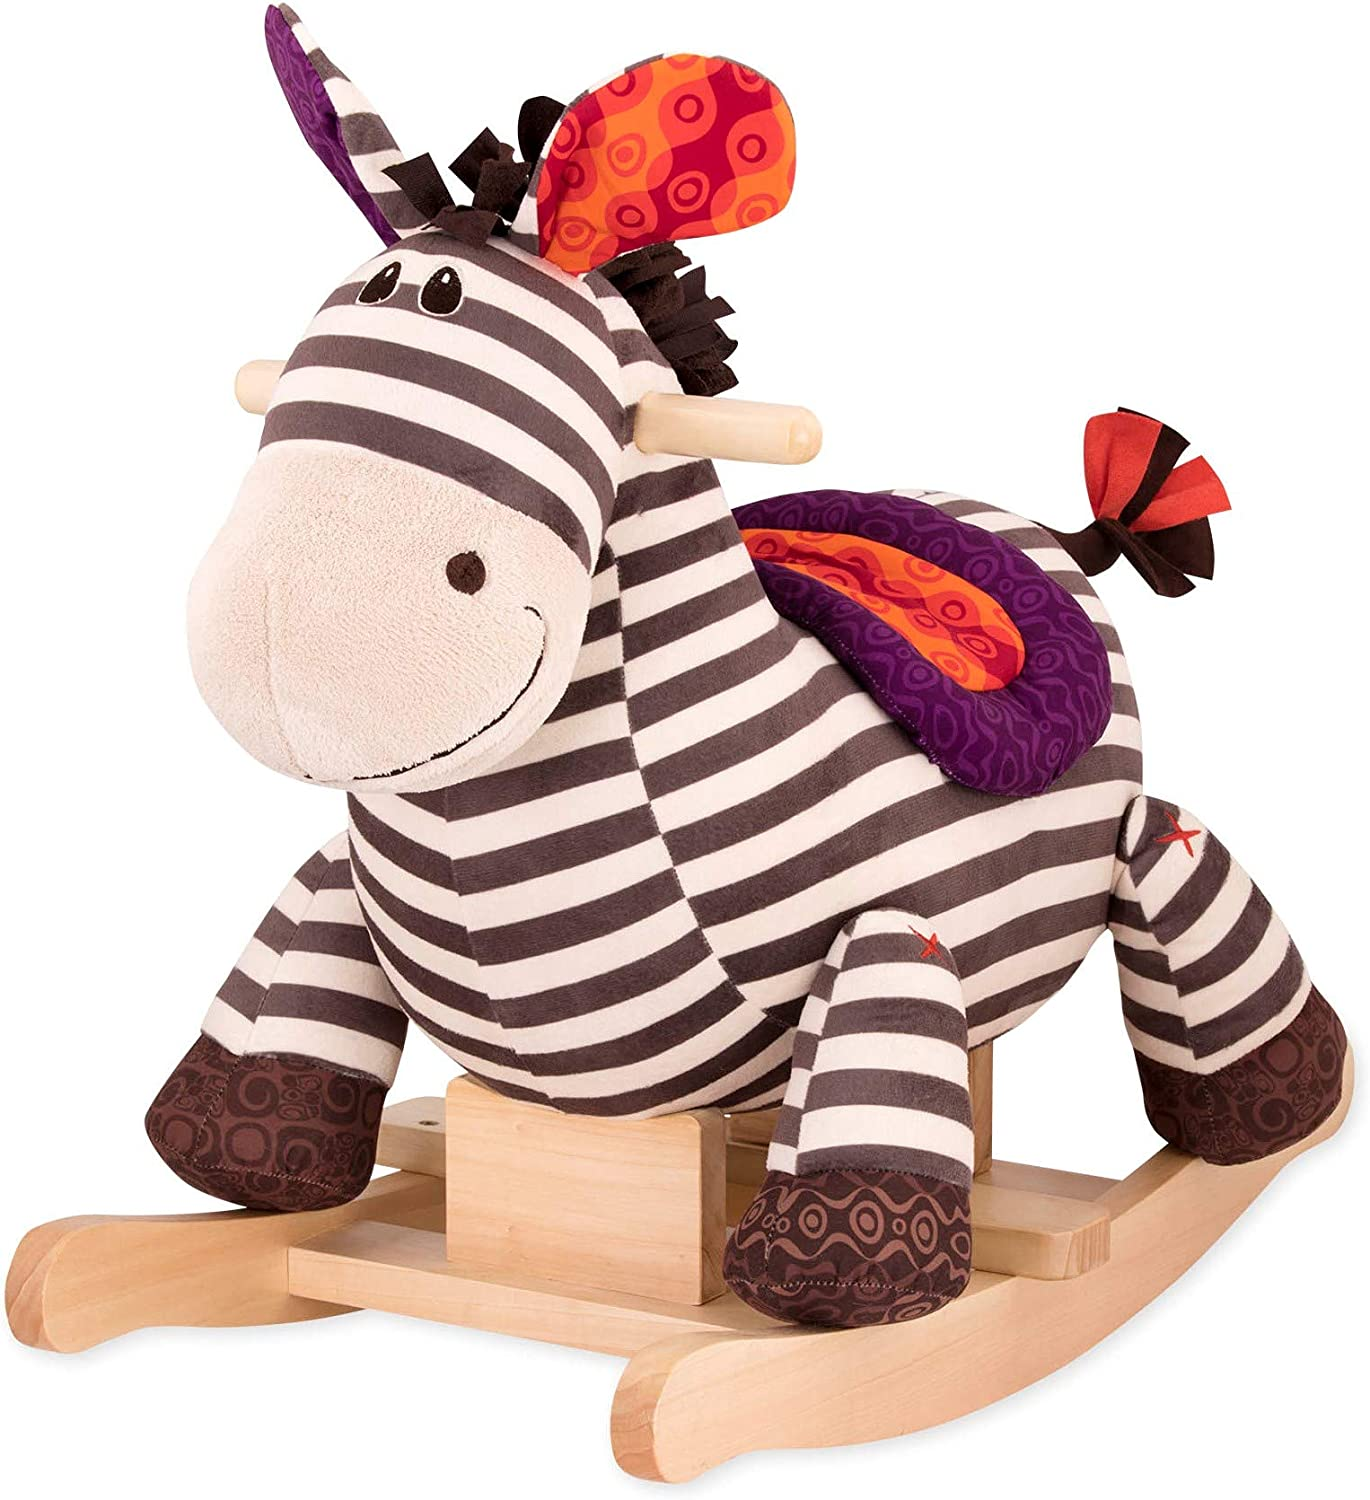 B. toys Kazoo Wooden Rocking Zebra Rodeo Rocker Plush Ride On Zebra Rocking Horse for Toddlers and Babies 18m